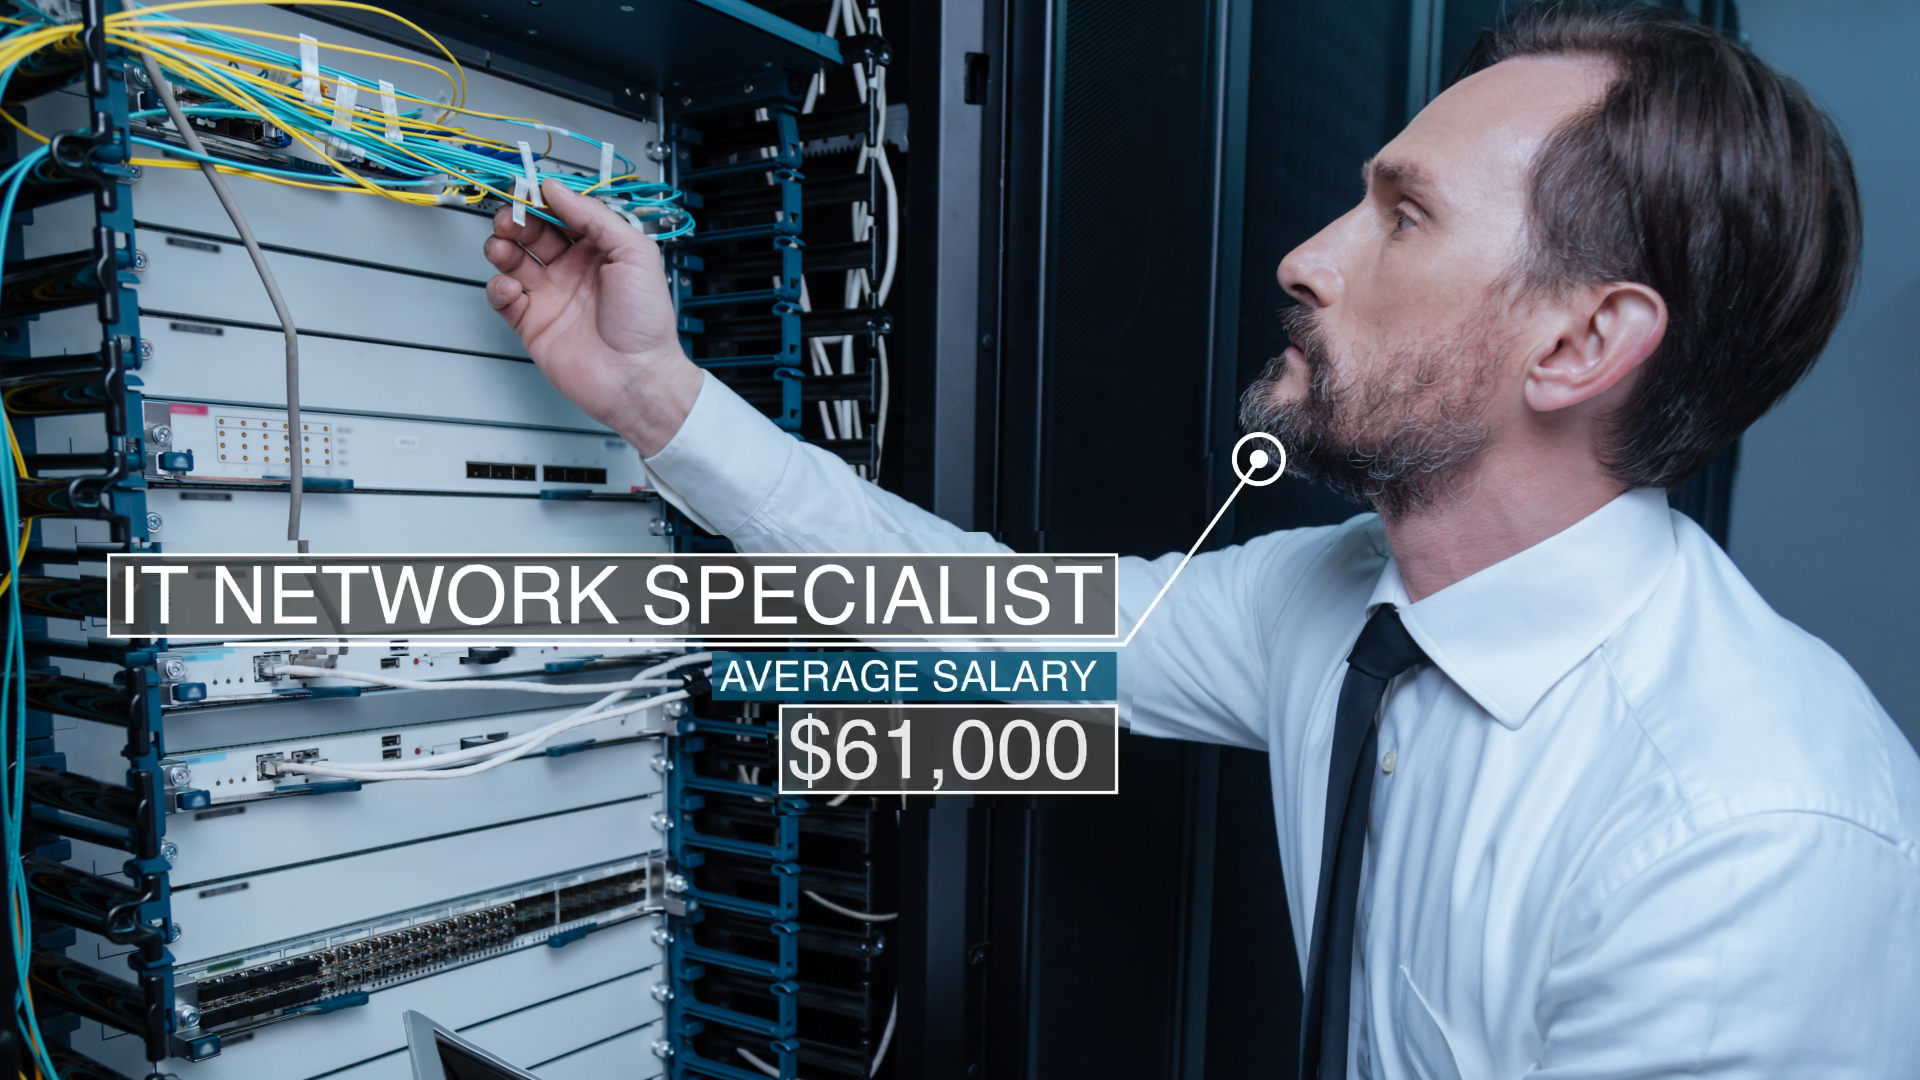 IT Network Specialist